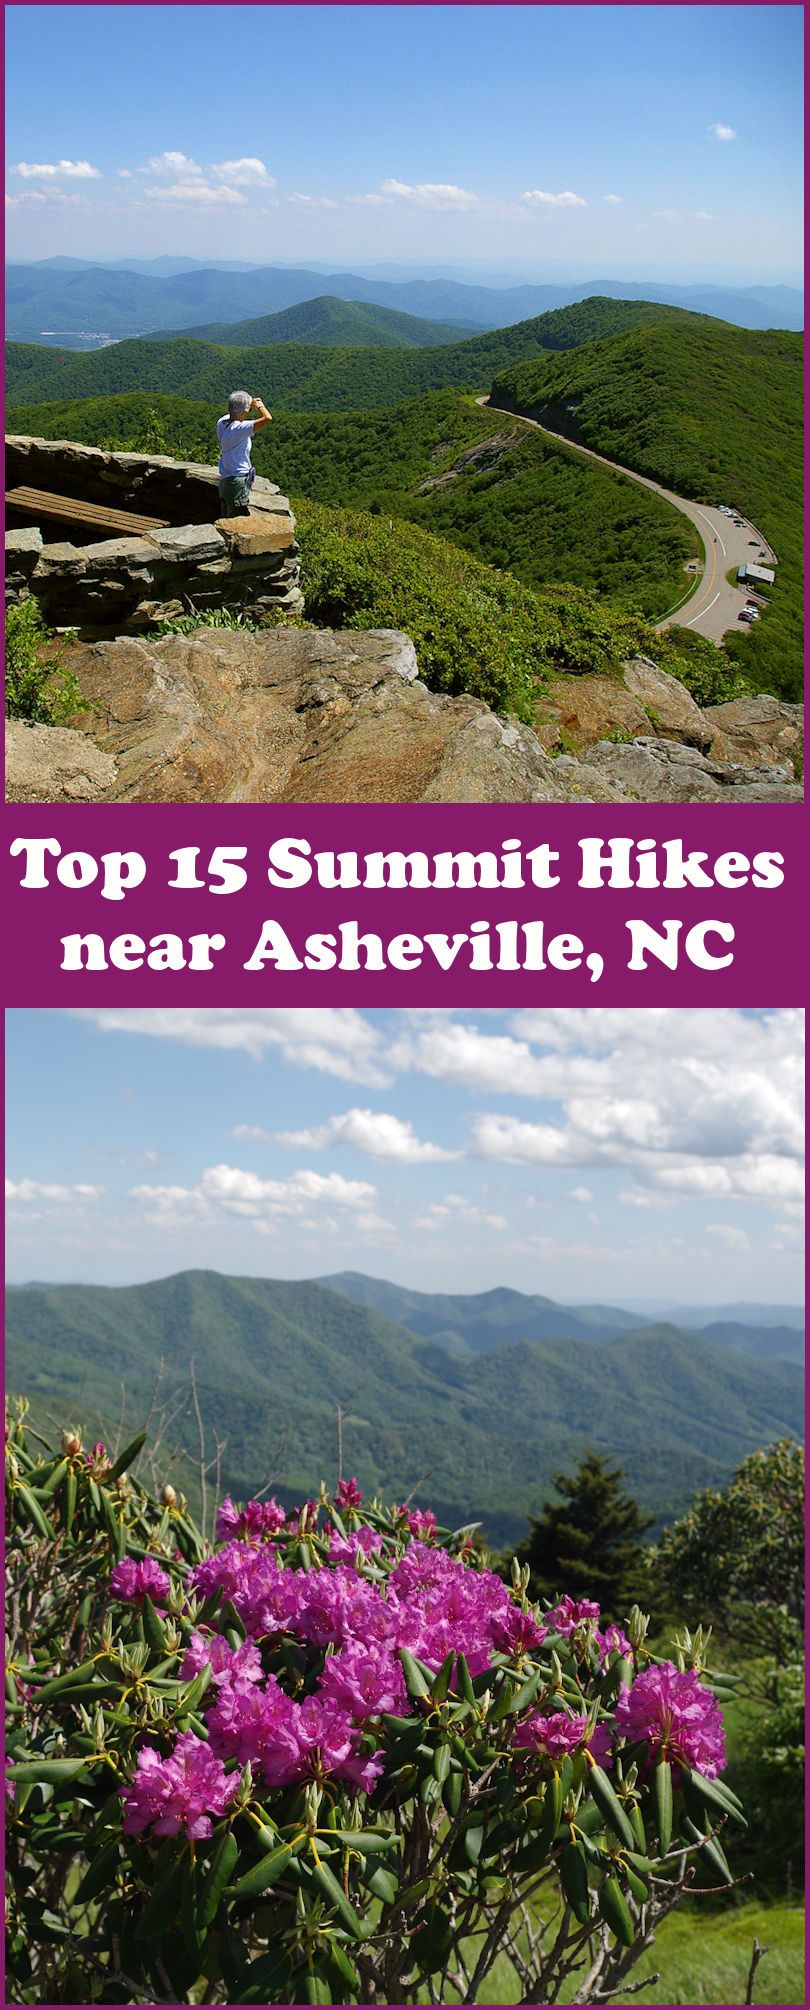 See our Top 15 Summit Hikes near Asheville in the western ...